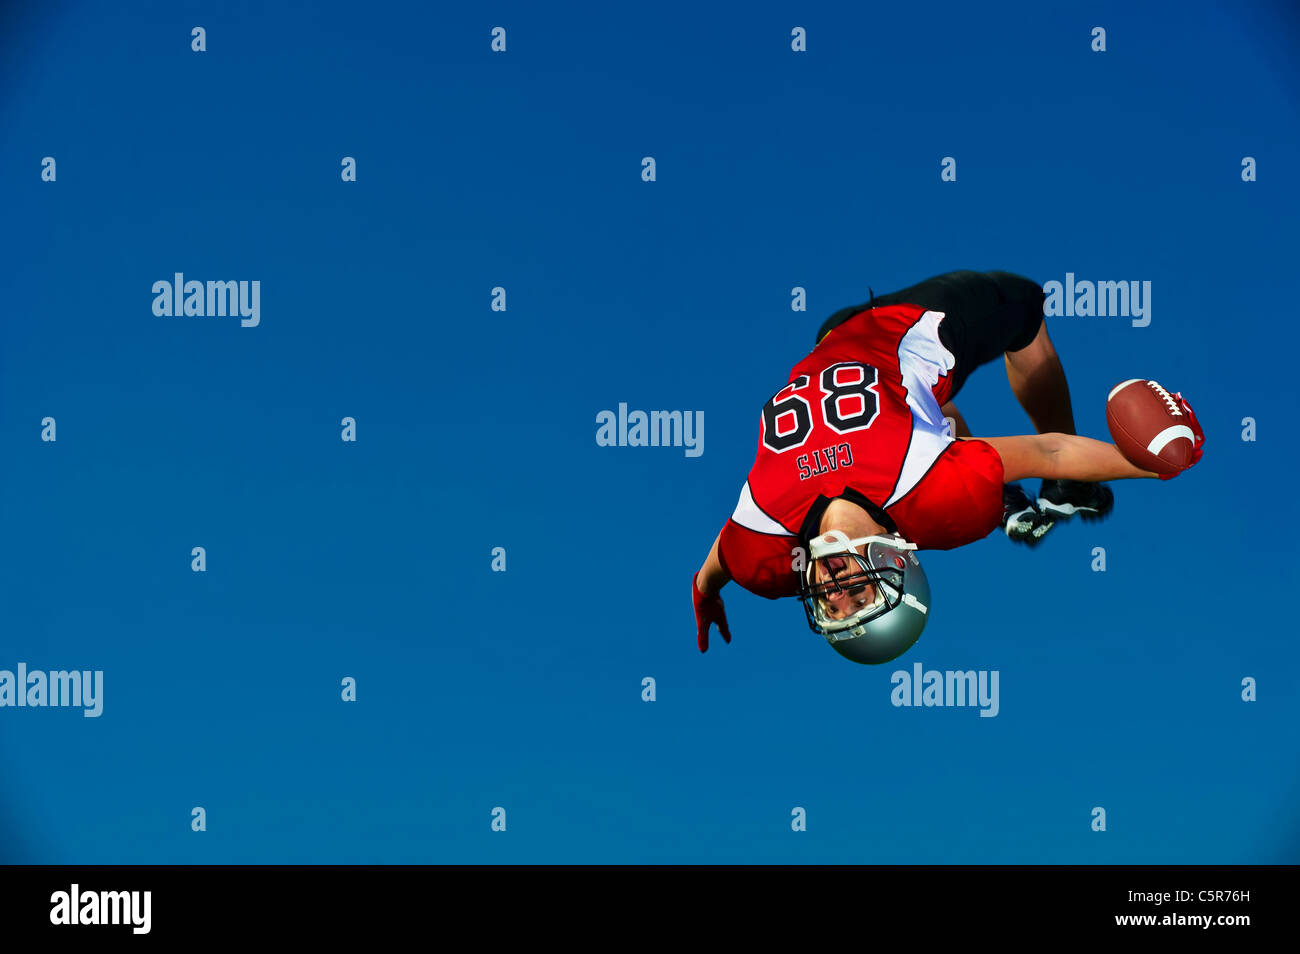 American Football player celebrates touchdown - Stock Image